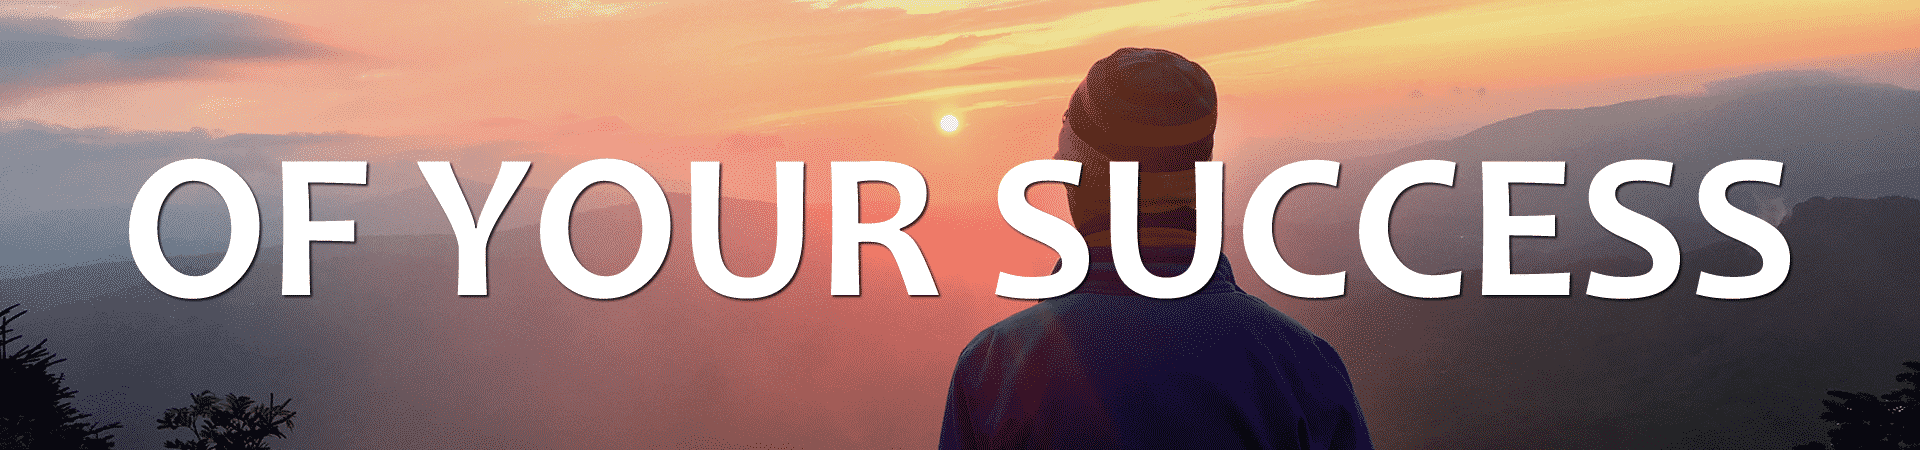 "man looking into sunset with the words ""of Your success"" overlaid"